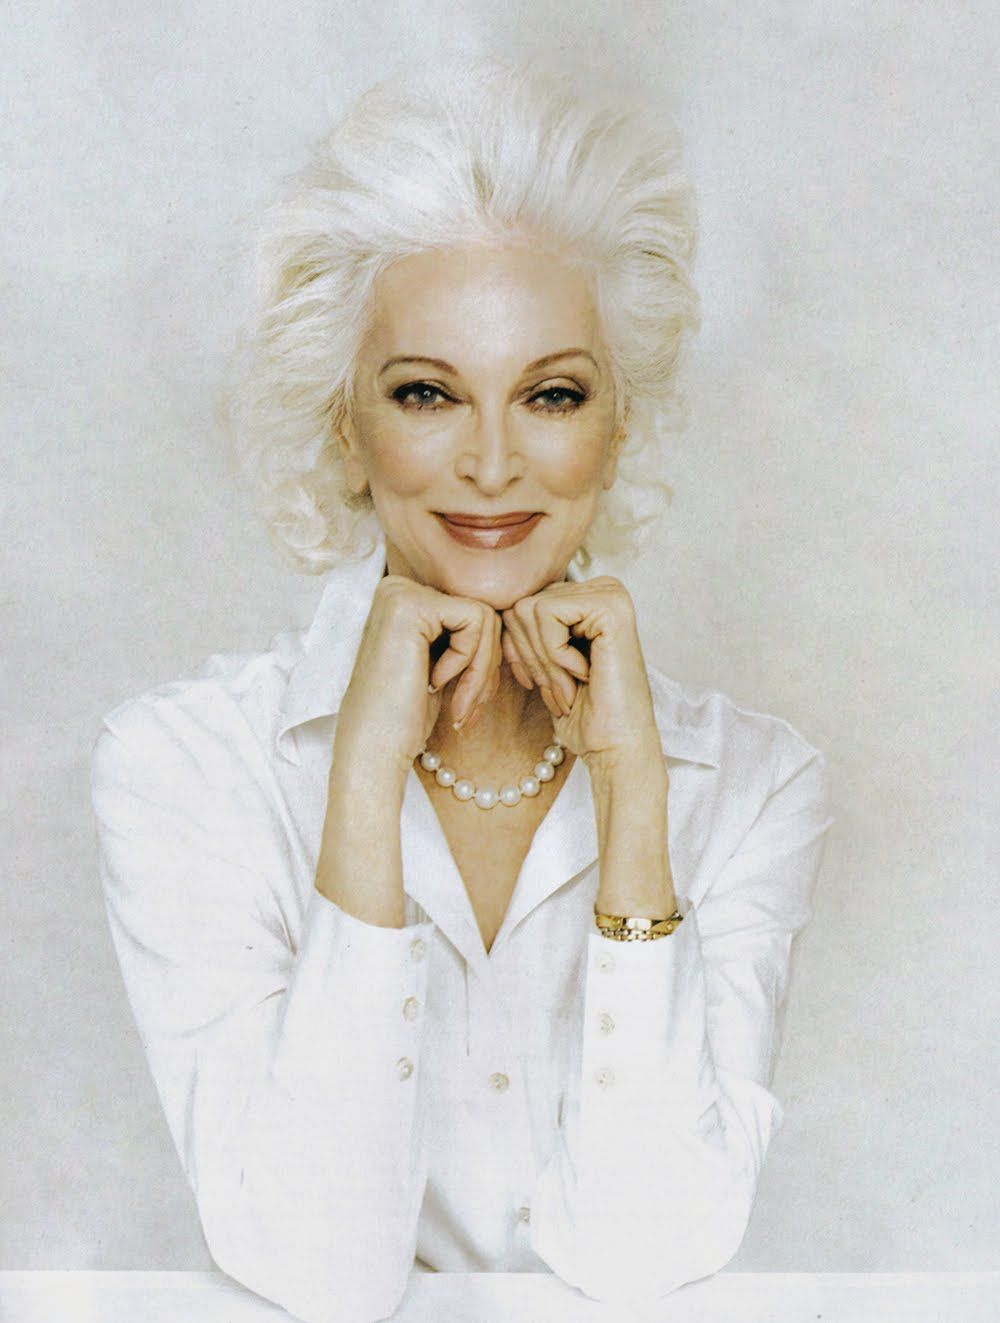 Carmen Dell'Orefice (born June 3, 1931) is 80 years old right now. She is the oldest model in the world modeling for the last 66 years, placing herself in the Guinness Book of World Records. !